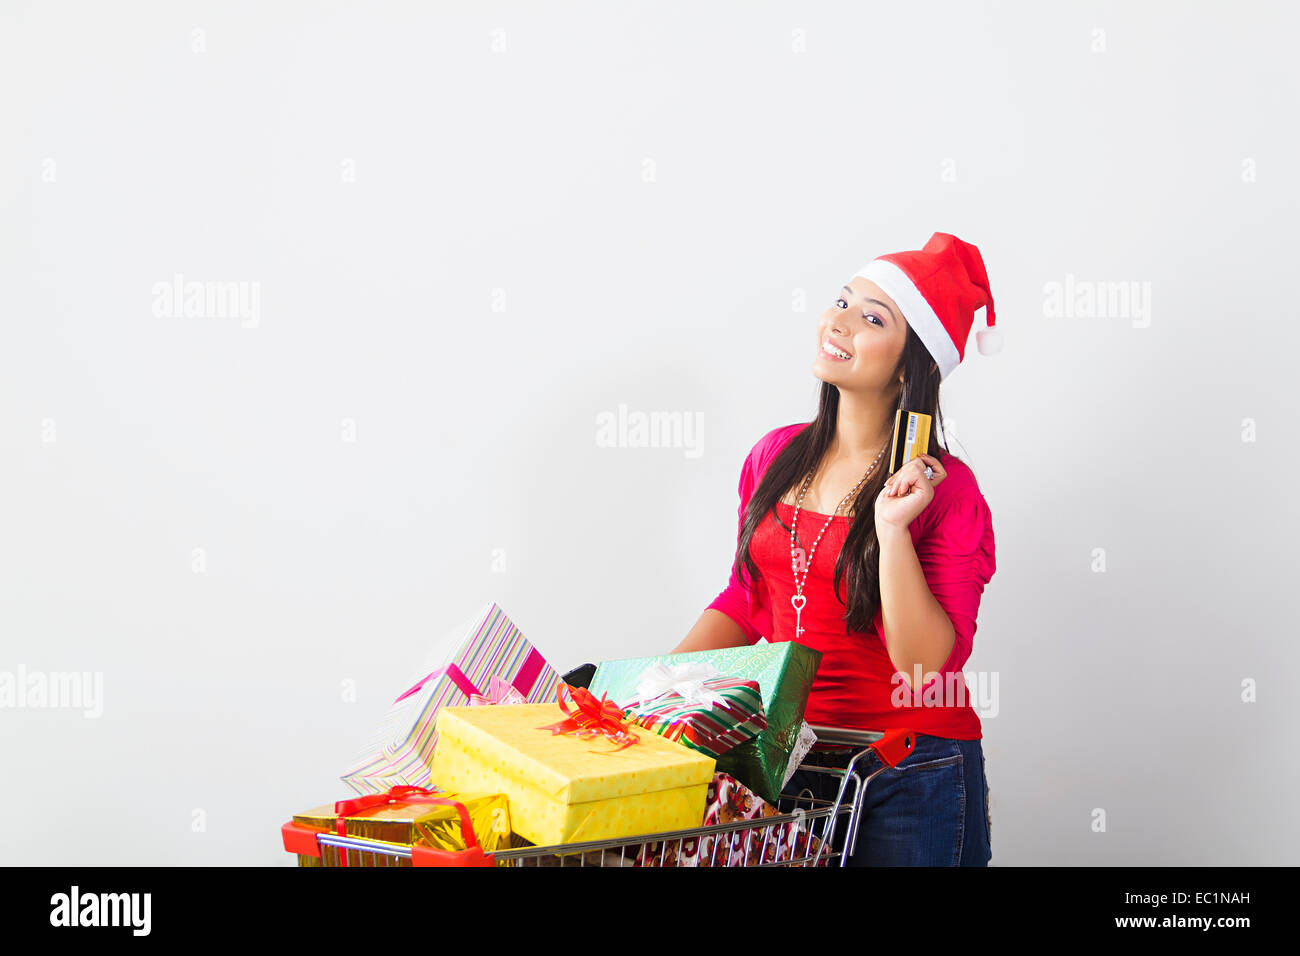 one indian lady Christmas Festival Gift online shopping Stock Photo ...